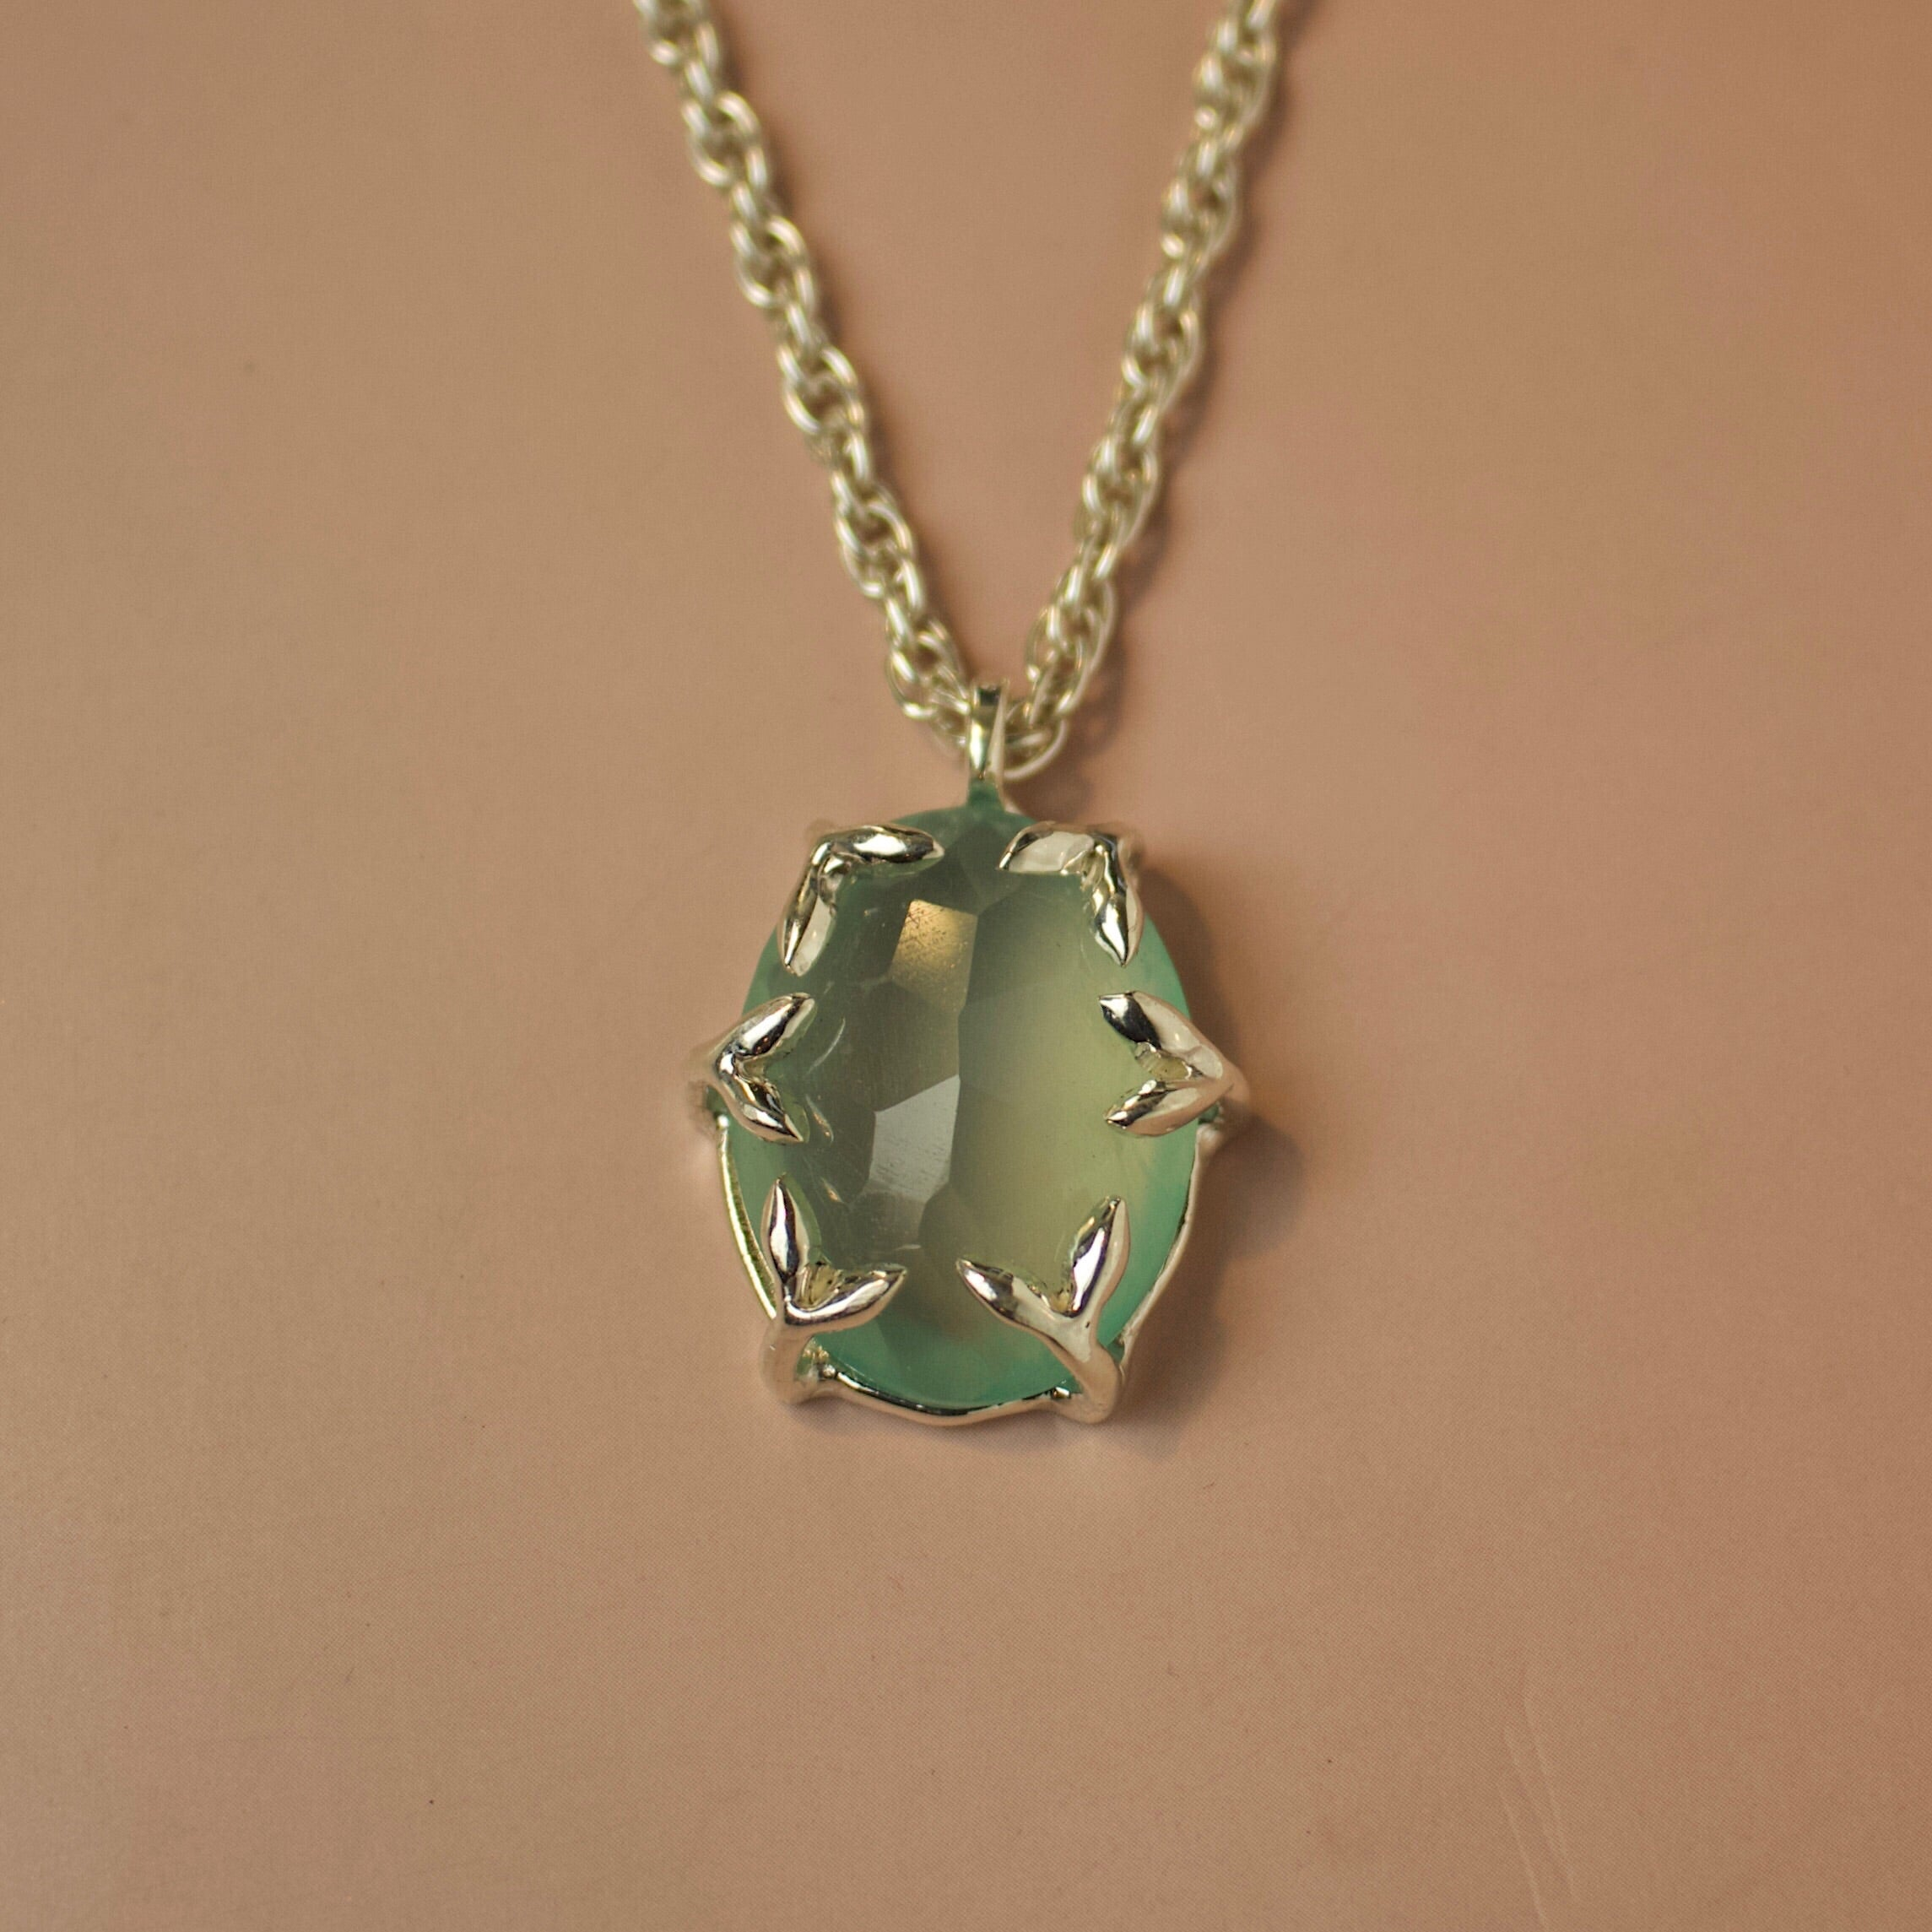 Lou II Necklace - Green Onyx - Necklace The Serpents Club